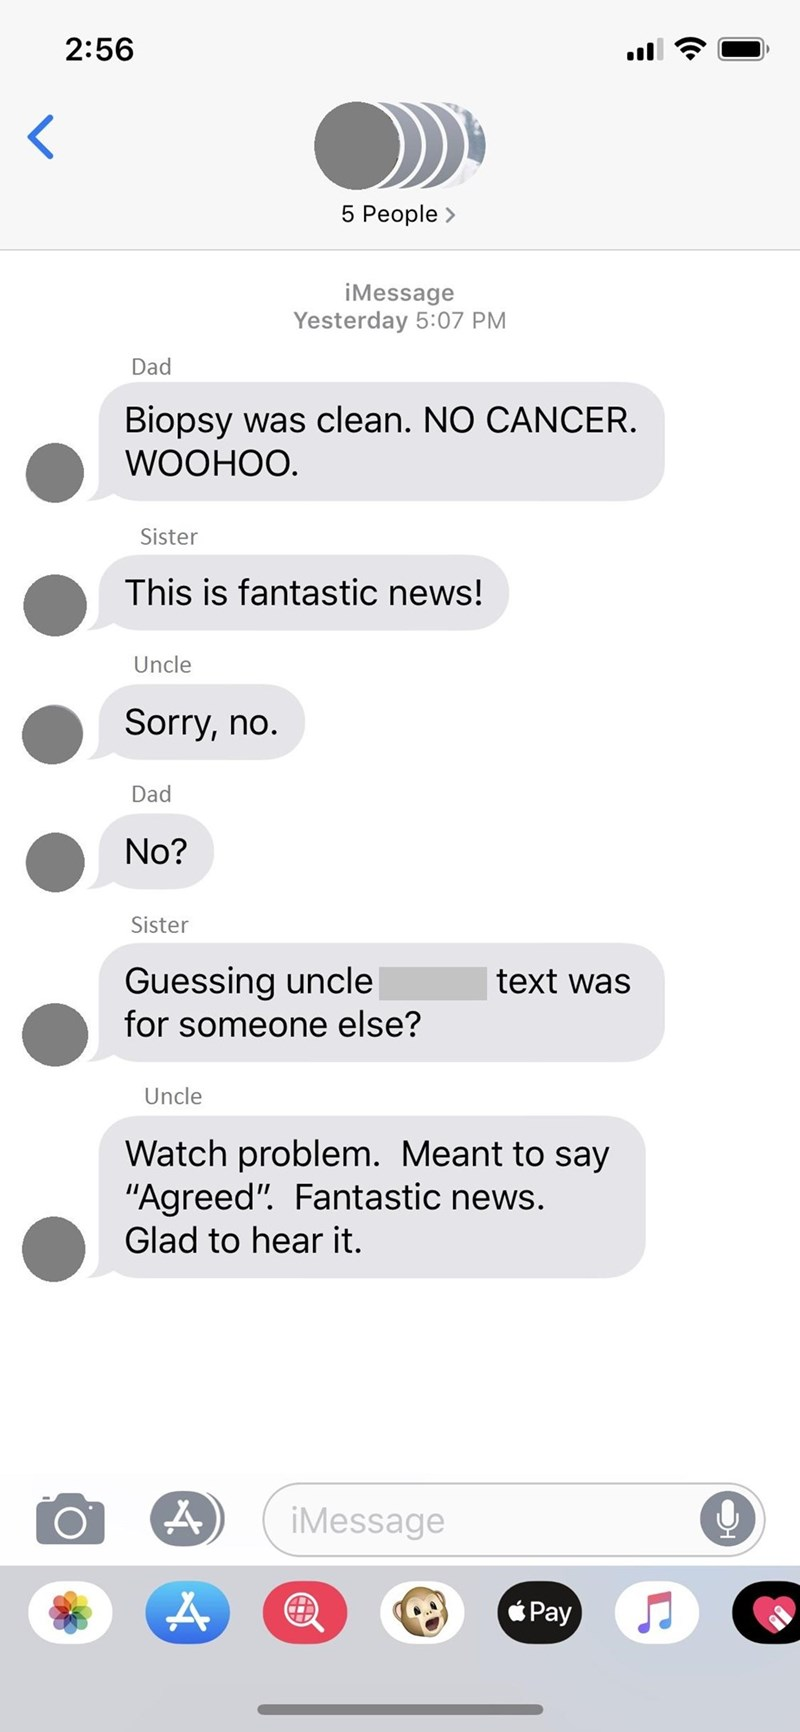 "Text - 2:56 5 People> iMessage Yesterday 5:07 PM Dad Biopsy was clean. NO CANCER. WOOHOO. Sister This is fantastic news! Uncle Sorry, no. Dad No? Sister Guessing uncle for someone else? text was Uncle Watch problem. Meant to say ""Agreed"". Fantastic news. Glad to hear it. iMessage Pay"